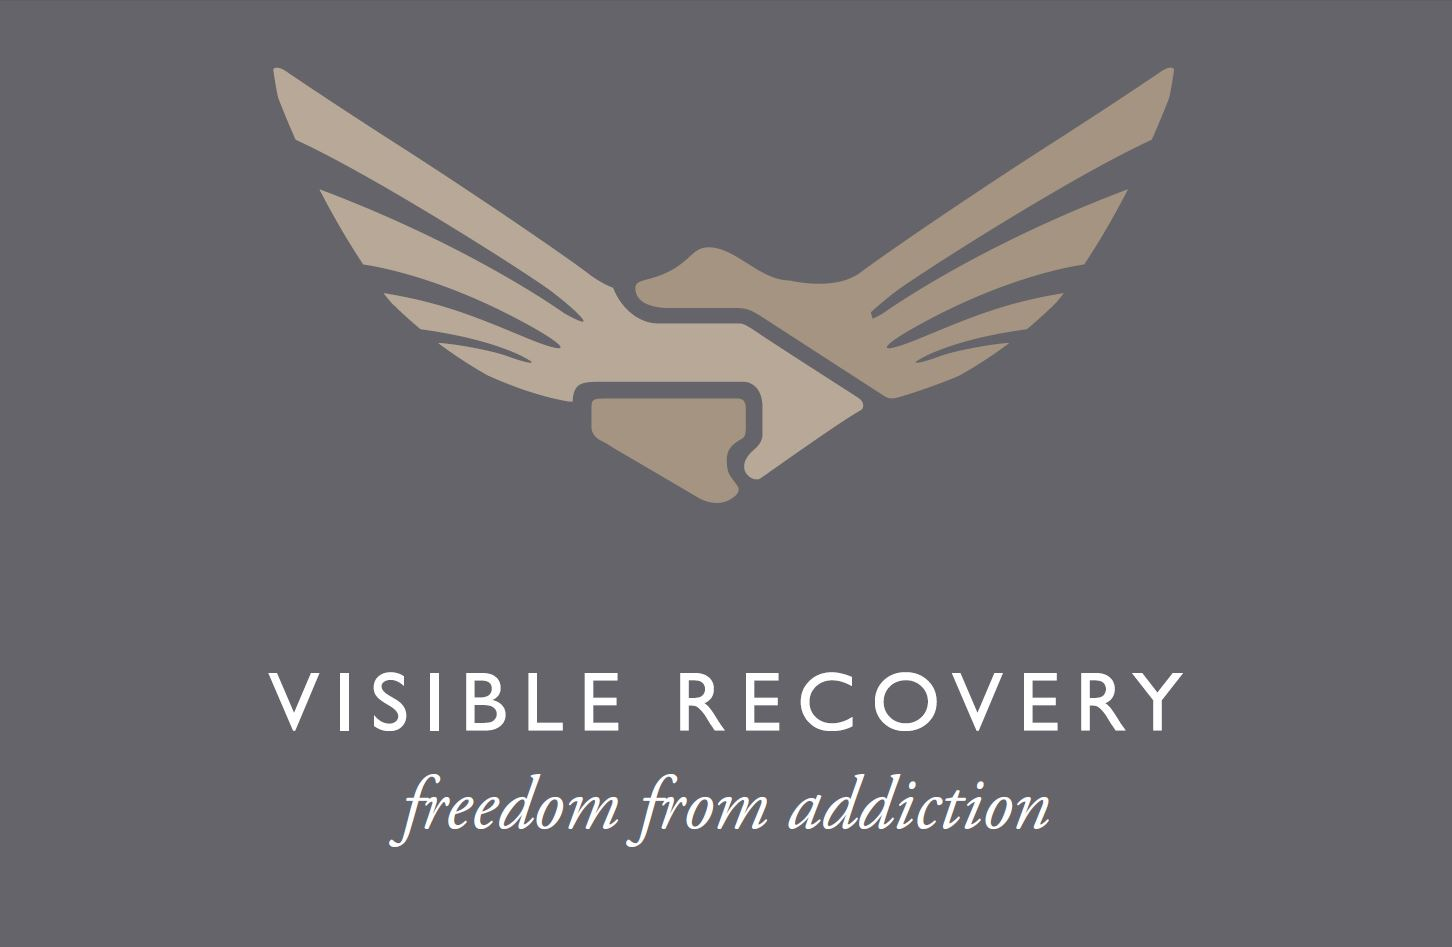 Visible Recovery